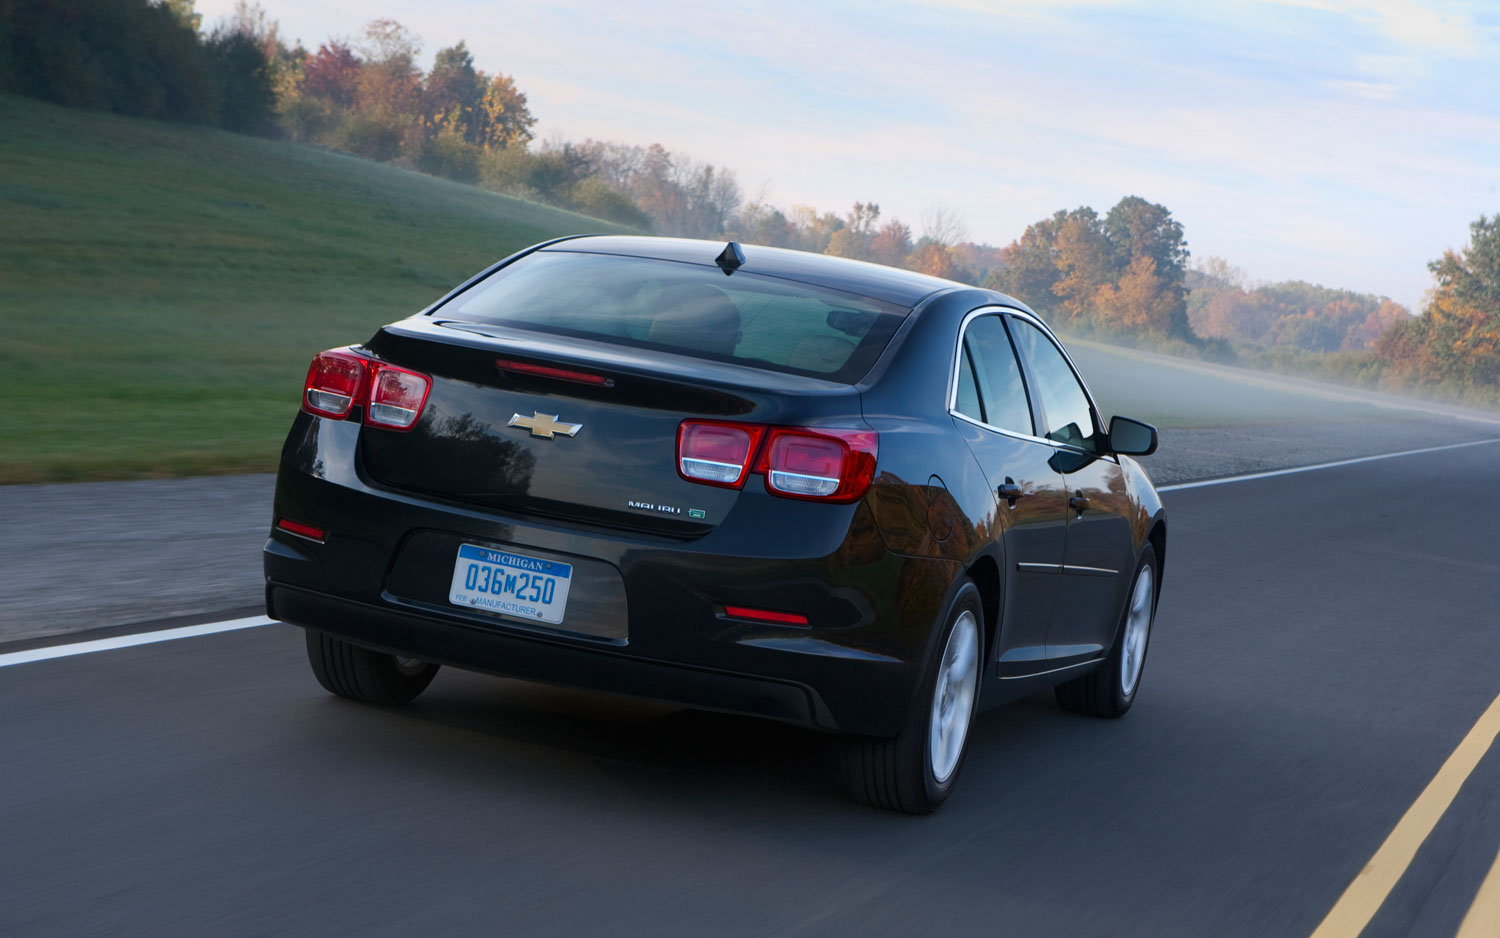 2013 Chevrolet Malibu I-4 Priced at $23,150; Turbo at $27,710